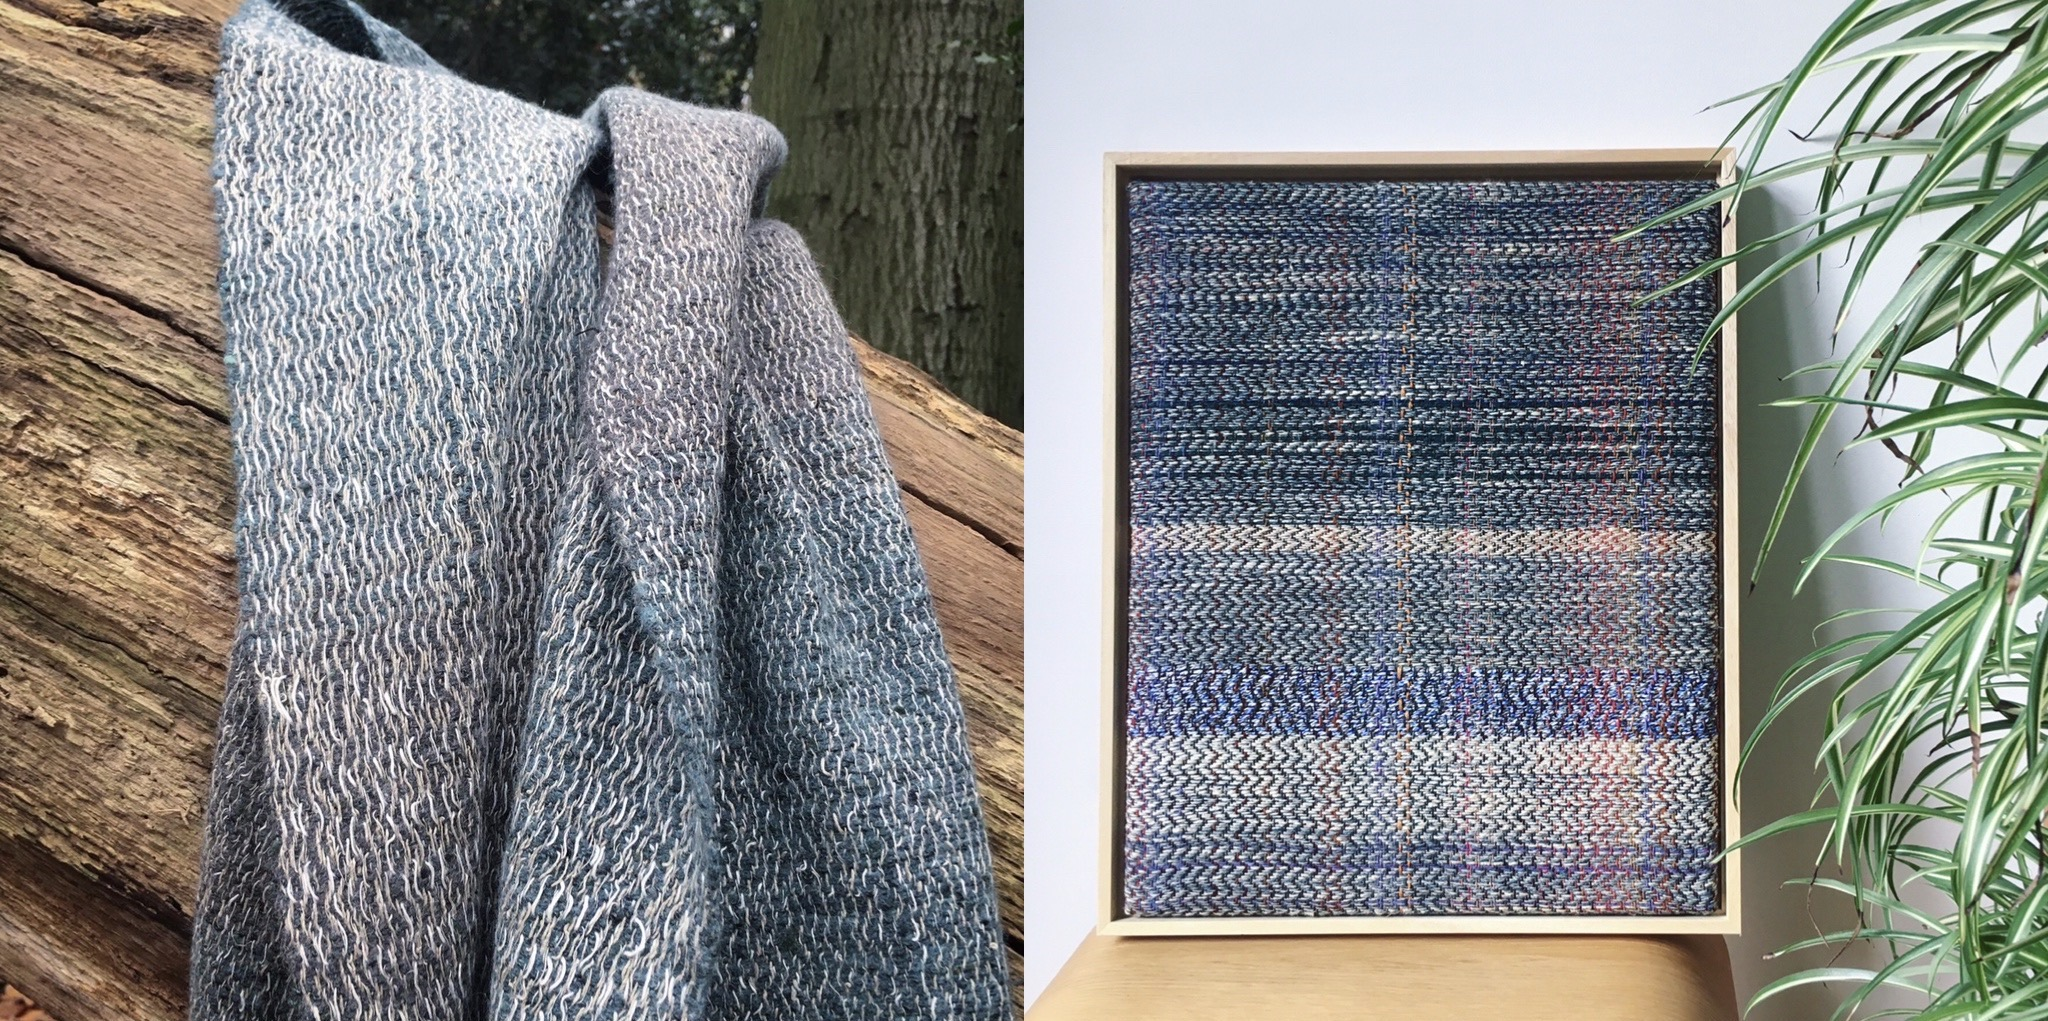 Handwoven linen and lambswool scarf and woven wall art